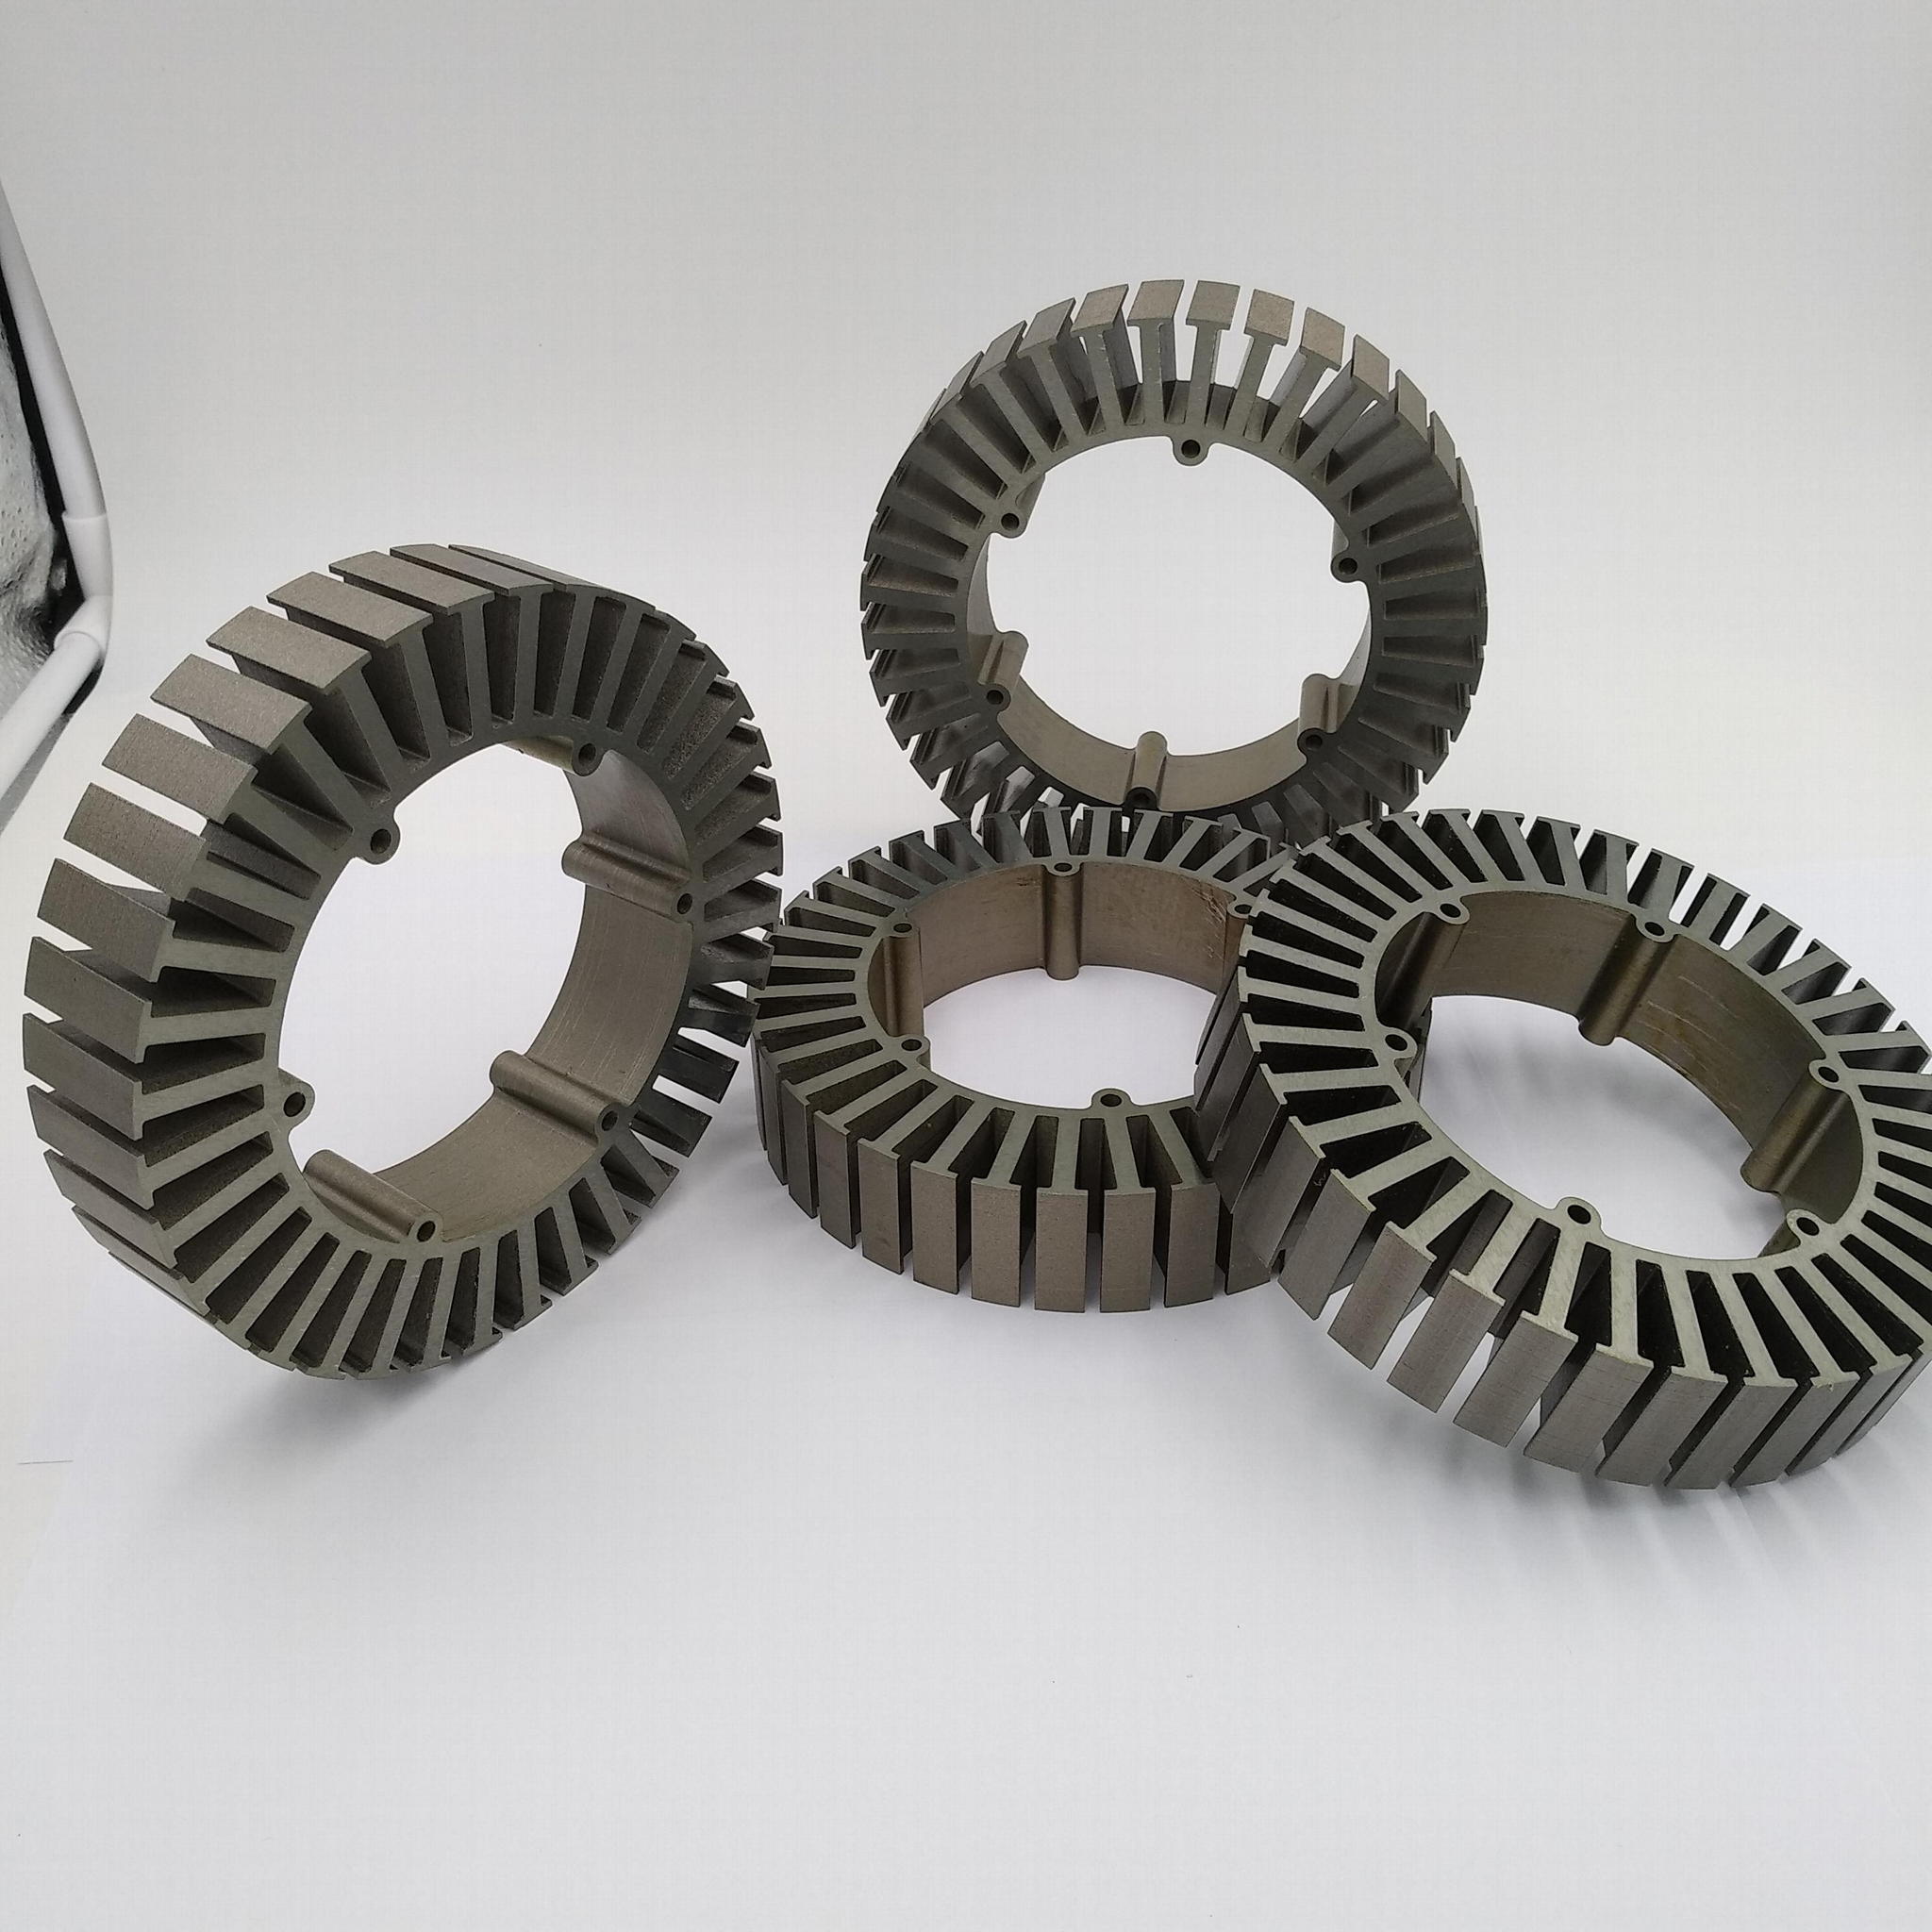 stator bonding lamination for electric car and electric motorcycle hub motors 2